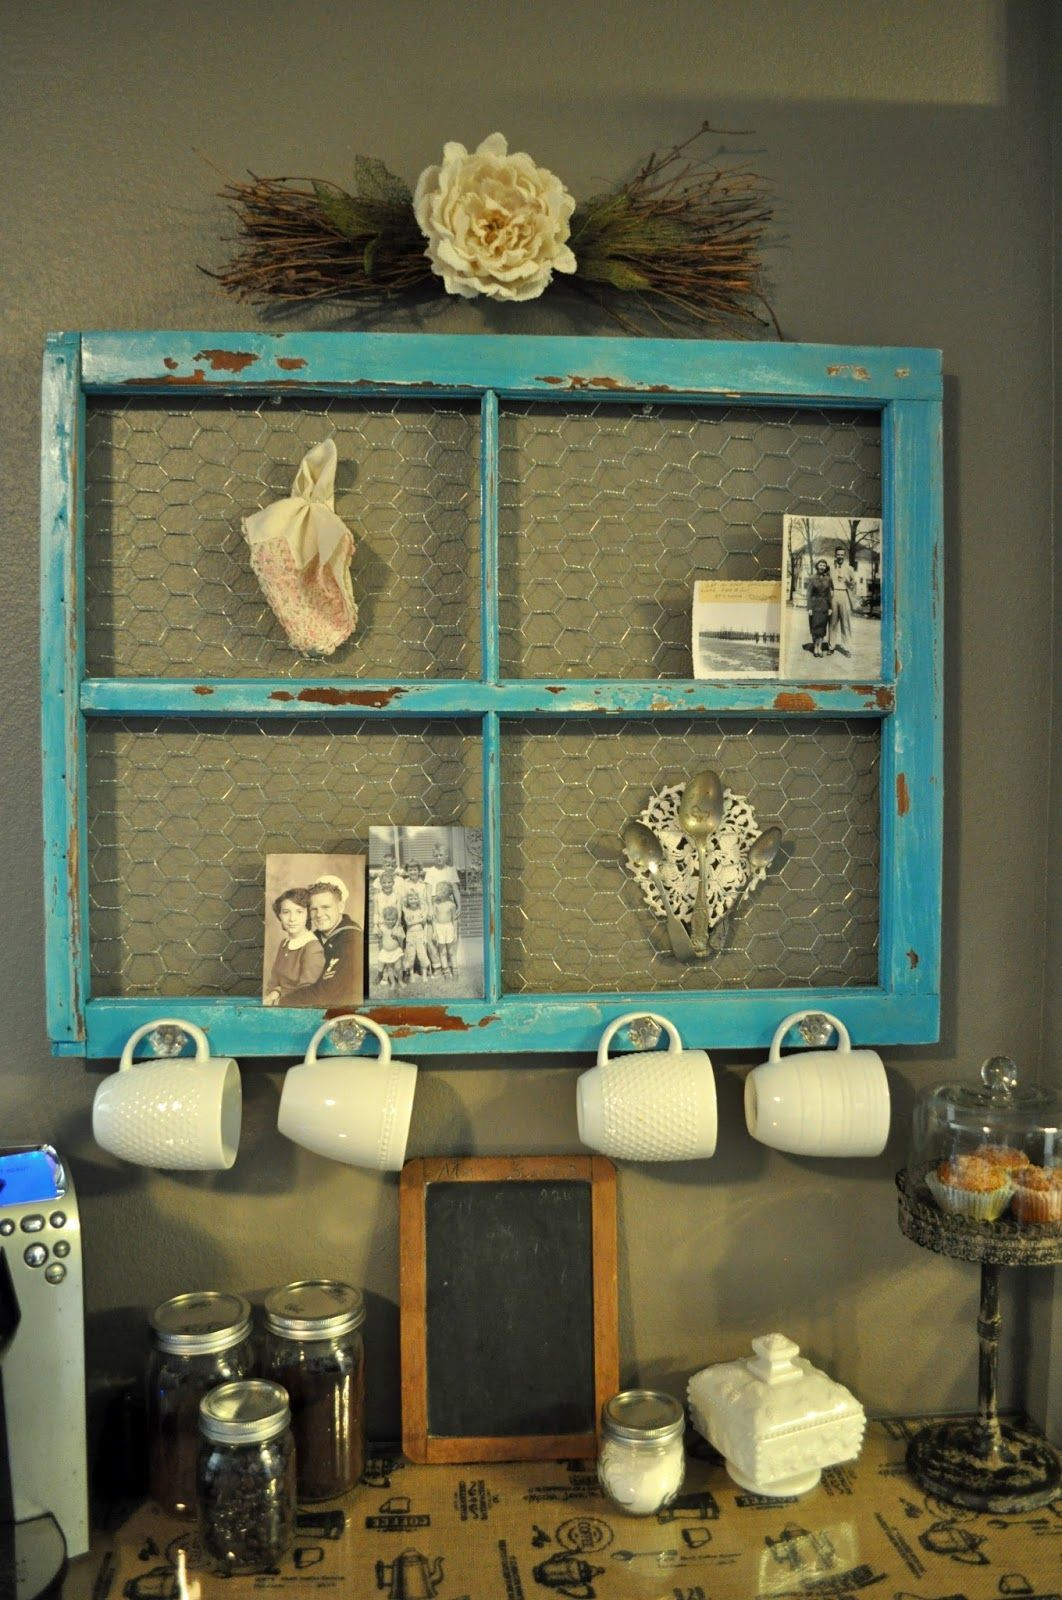 Repurposed Chair Ideas My Repurposed Life - How to repurpose old windows turquoise window frame coffee corner